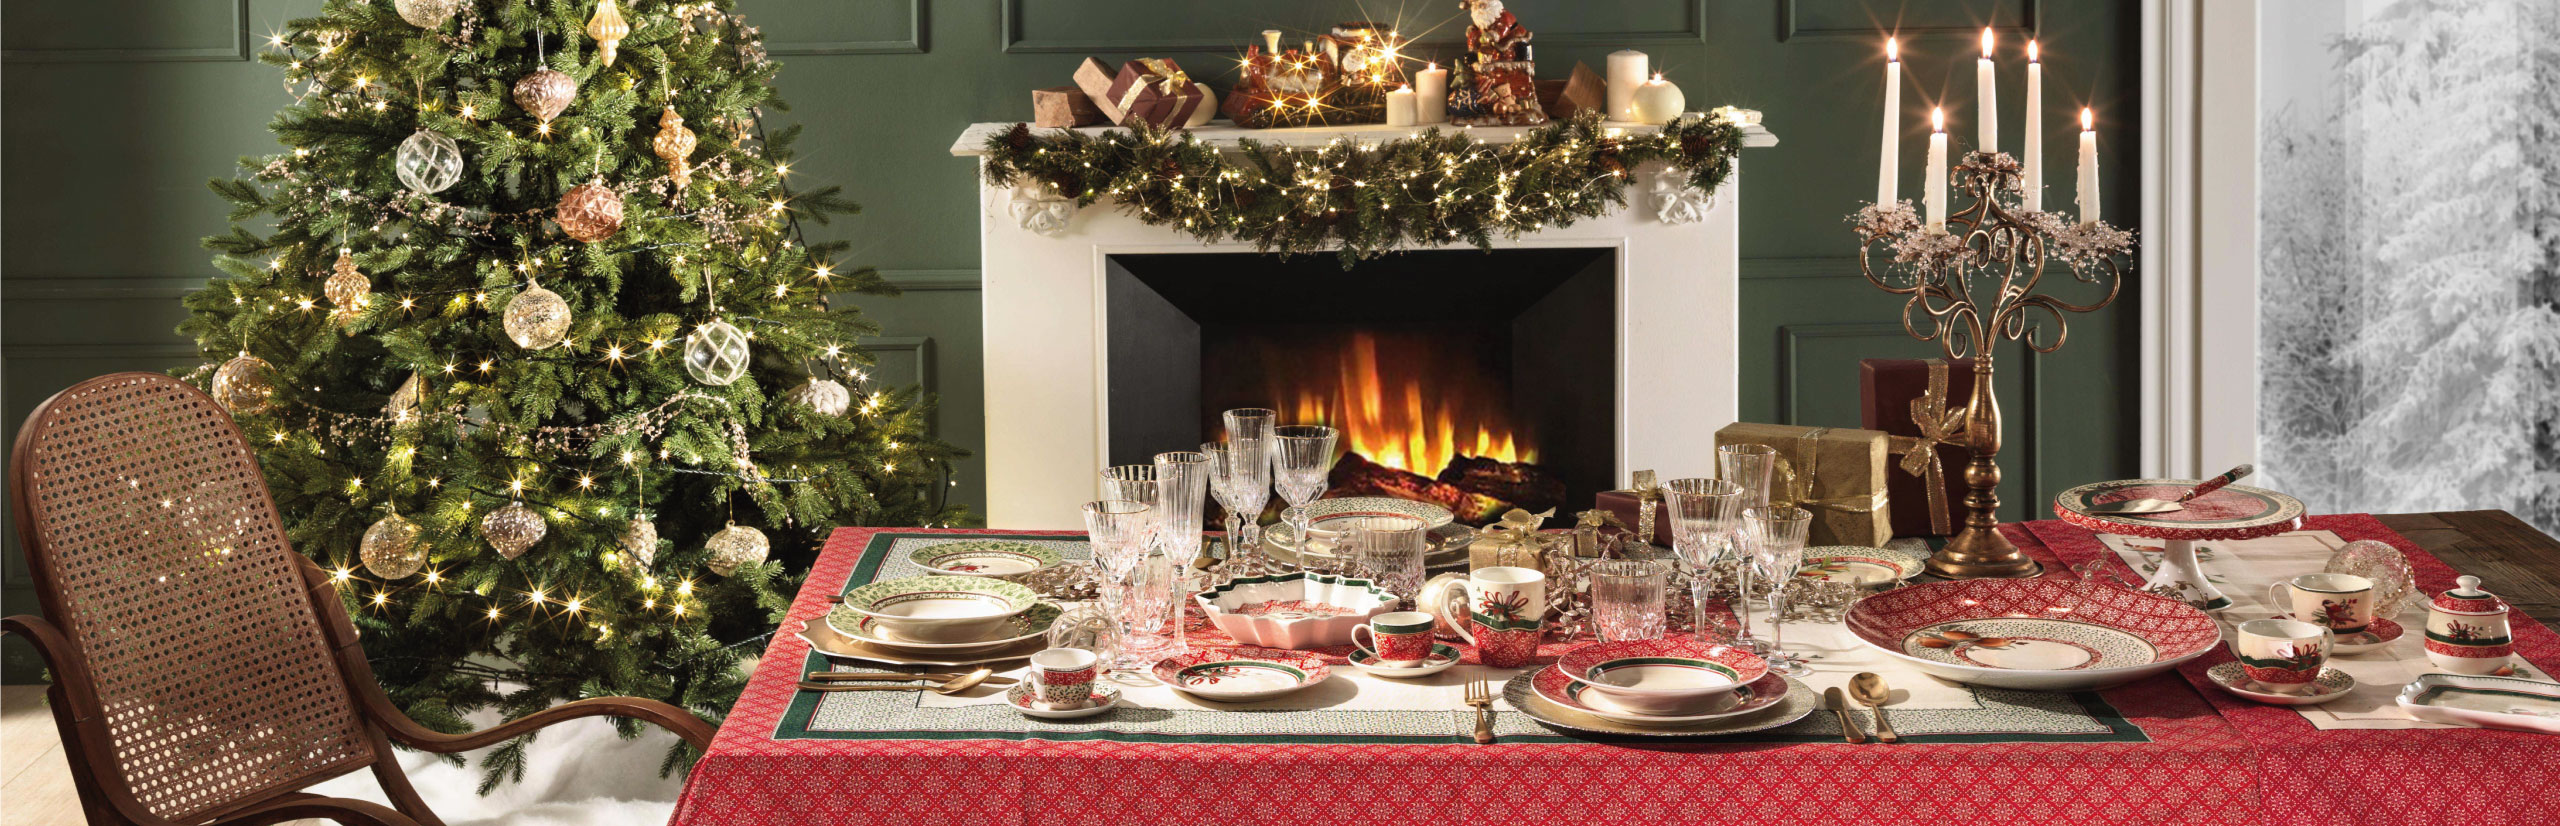 Brandani's Christmas table – Cantico collection